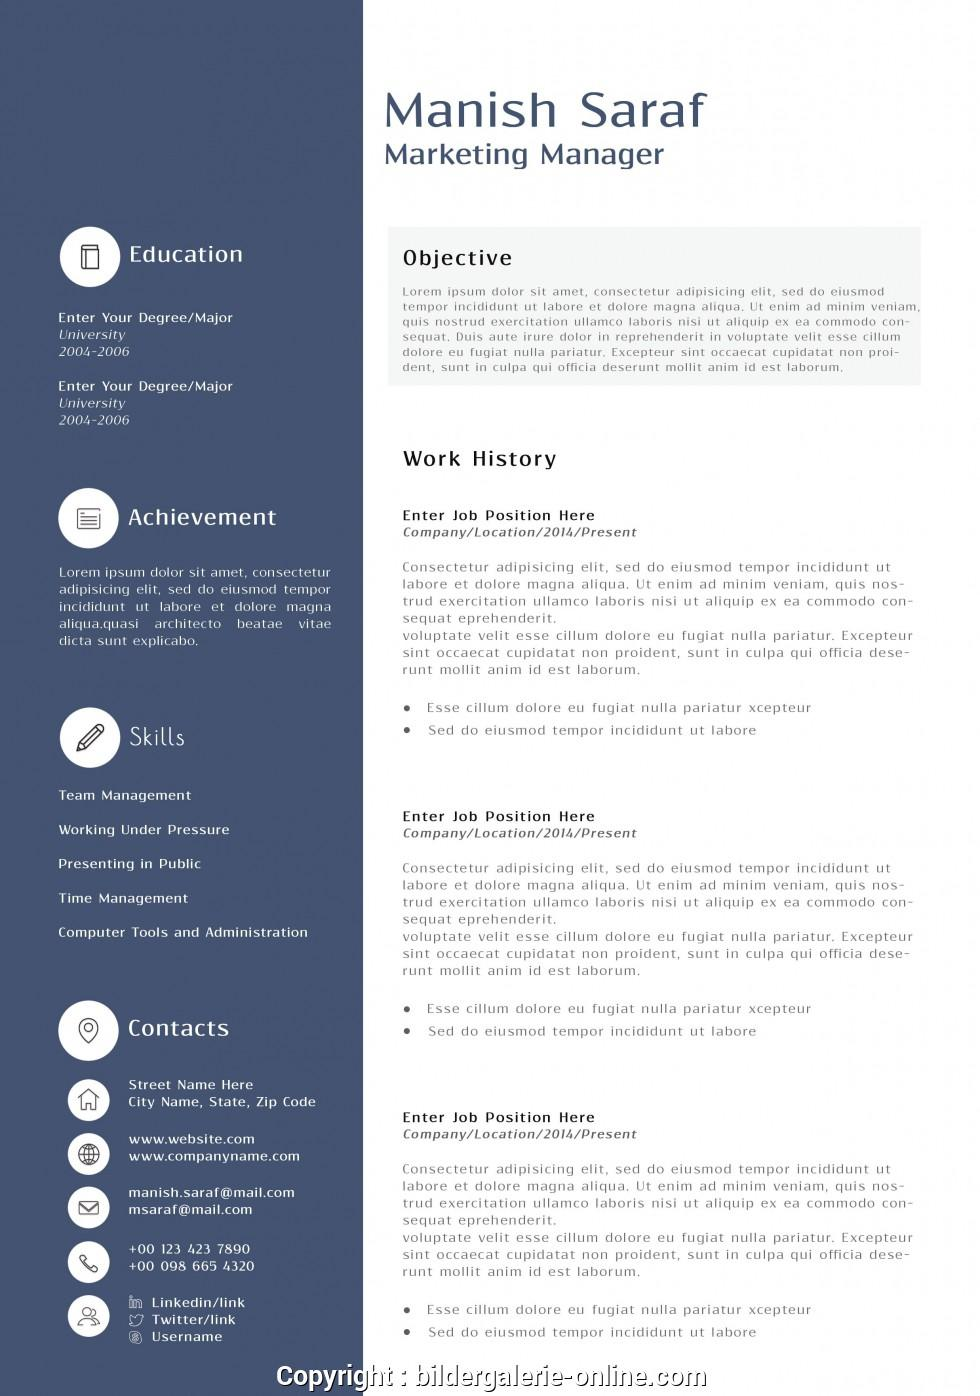 Cool Marketing Resume Templates